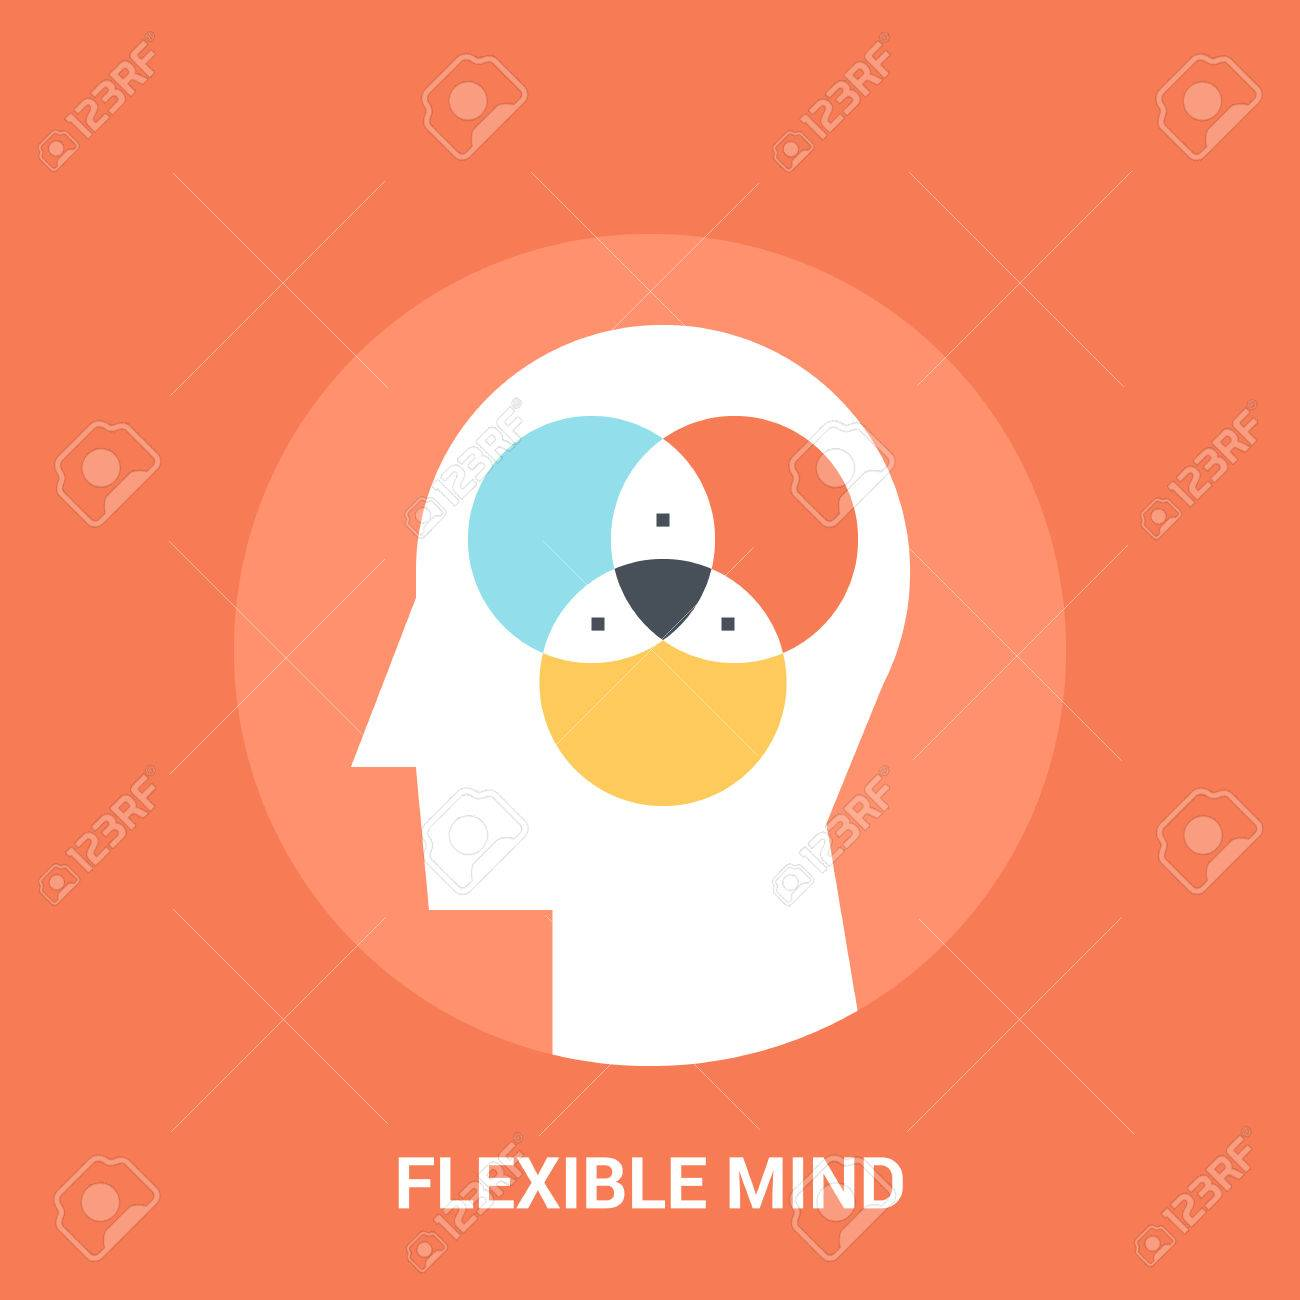 Abstract vector illustration of flexible mind icon concept - 70983056